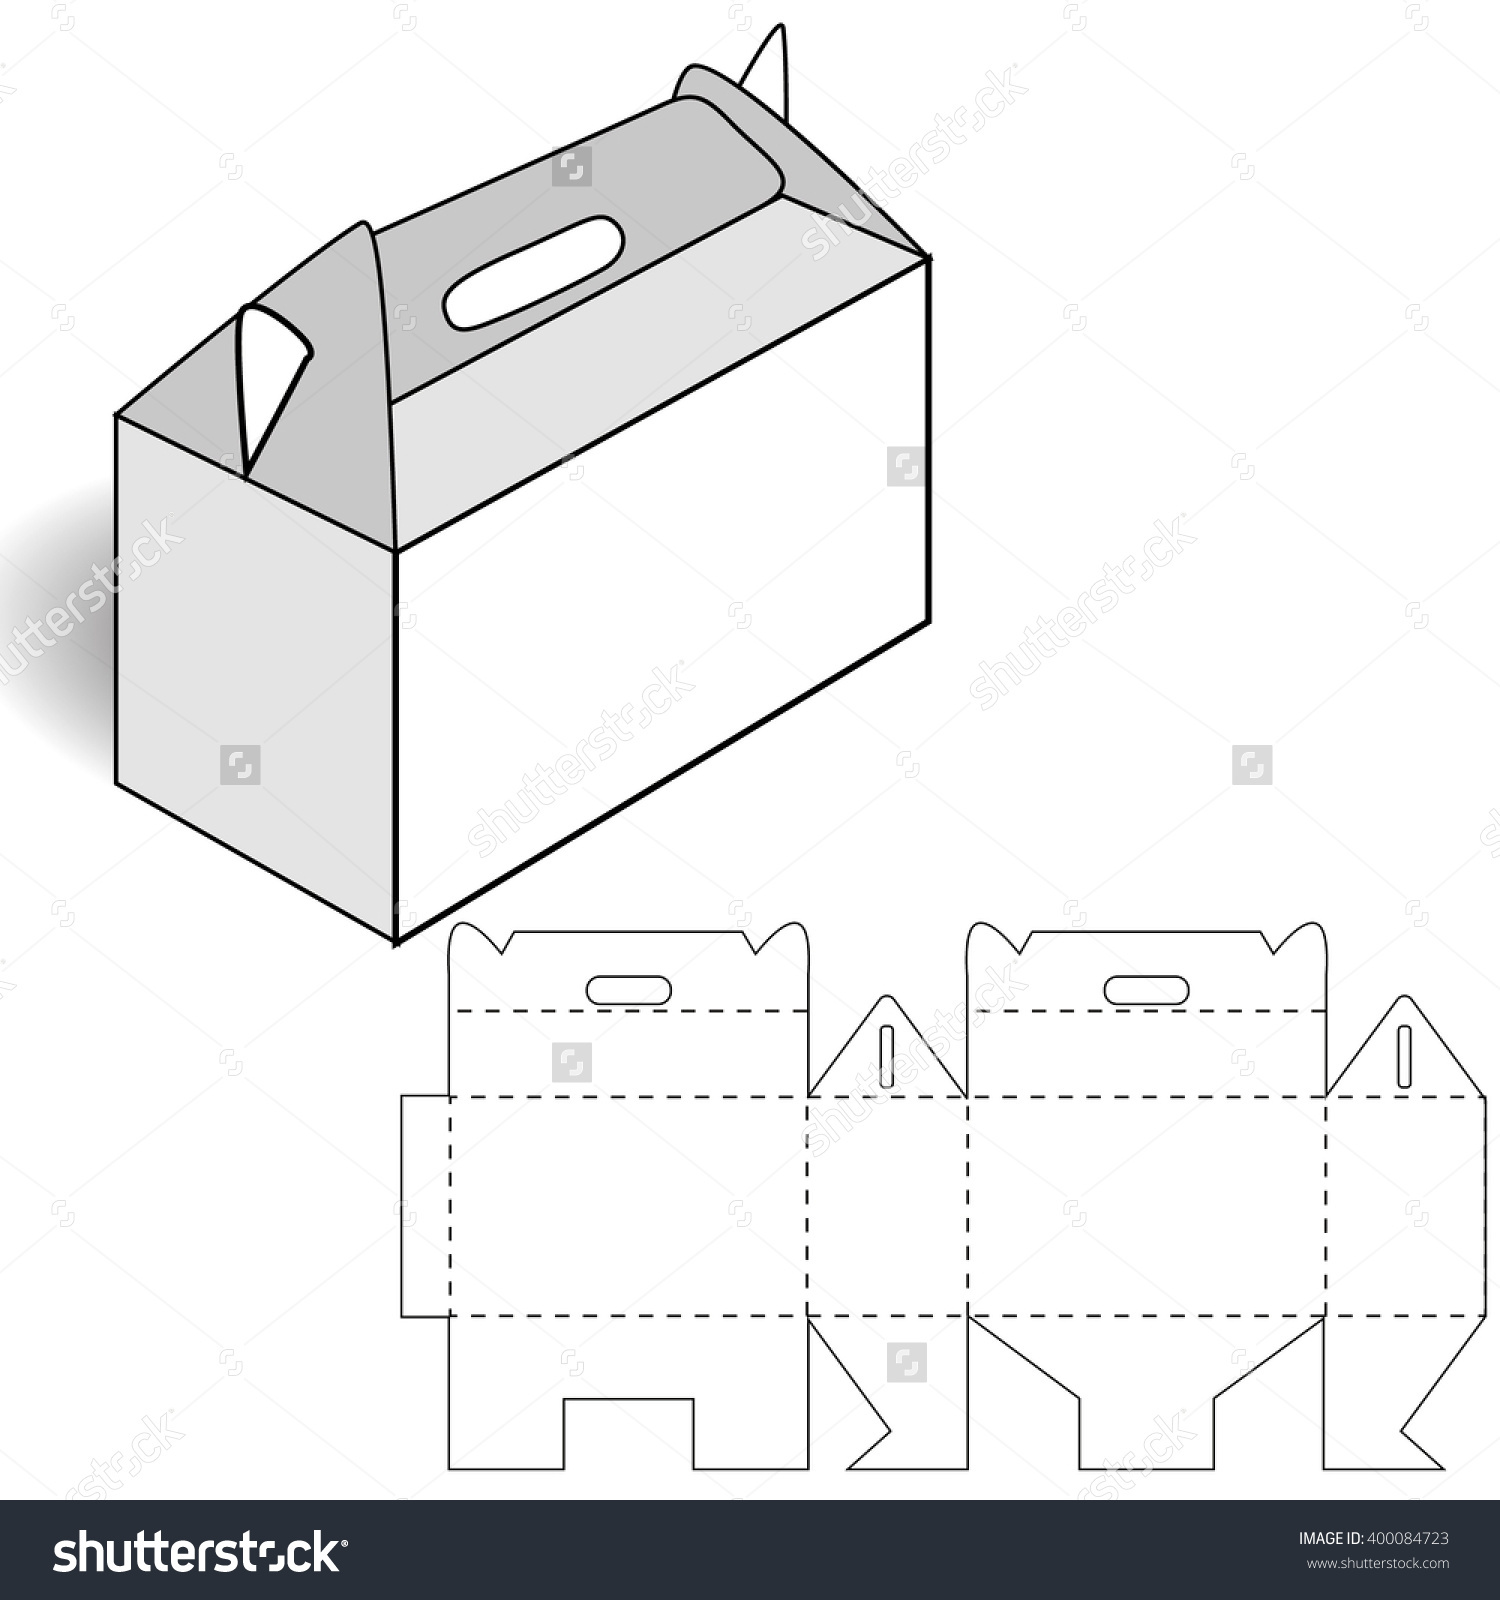 Cardboard Box Cutting Box Handle Stock Vector 400084723.